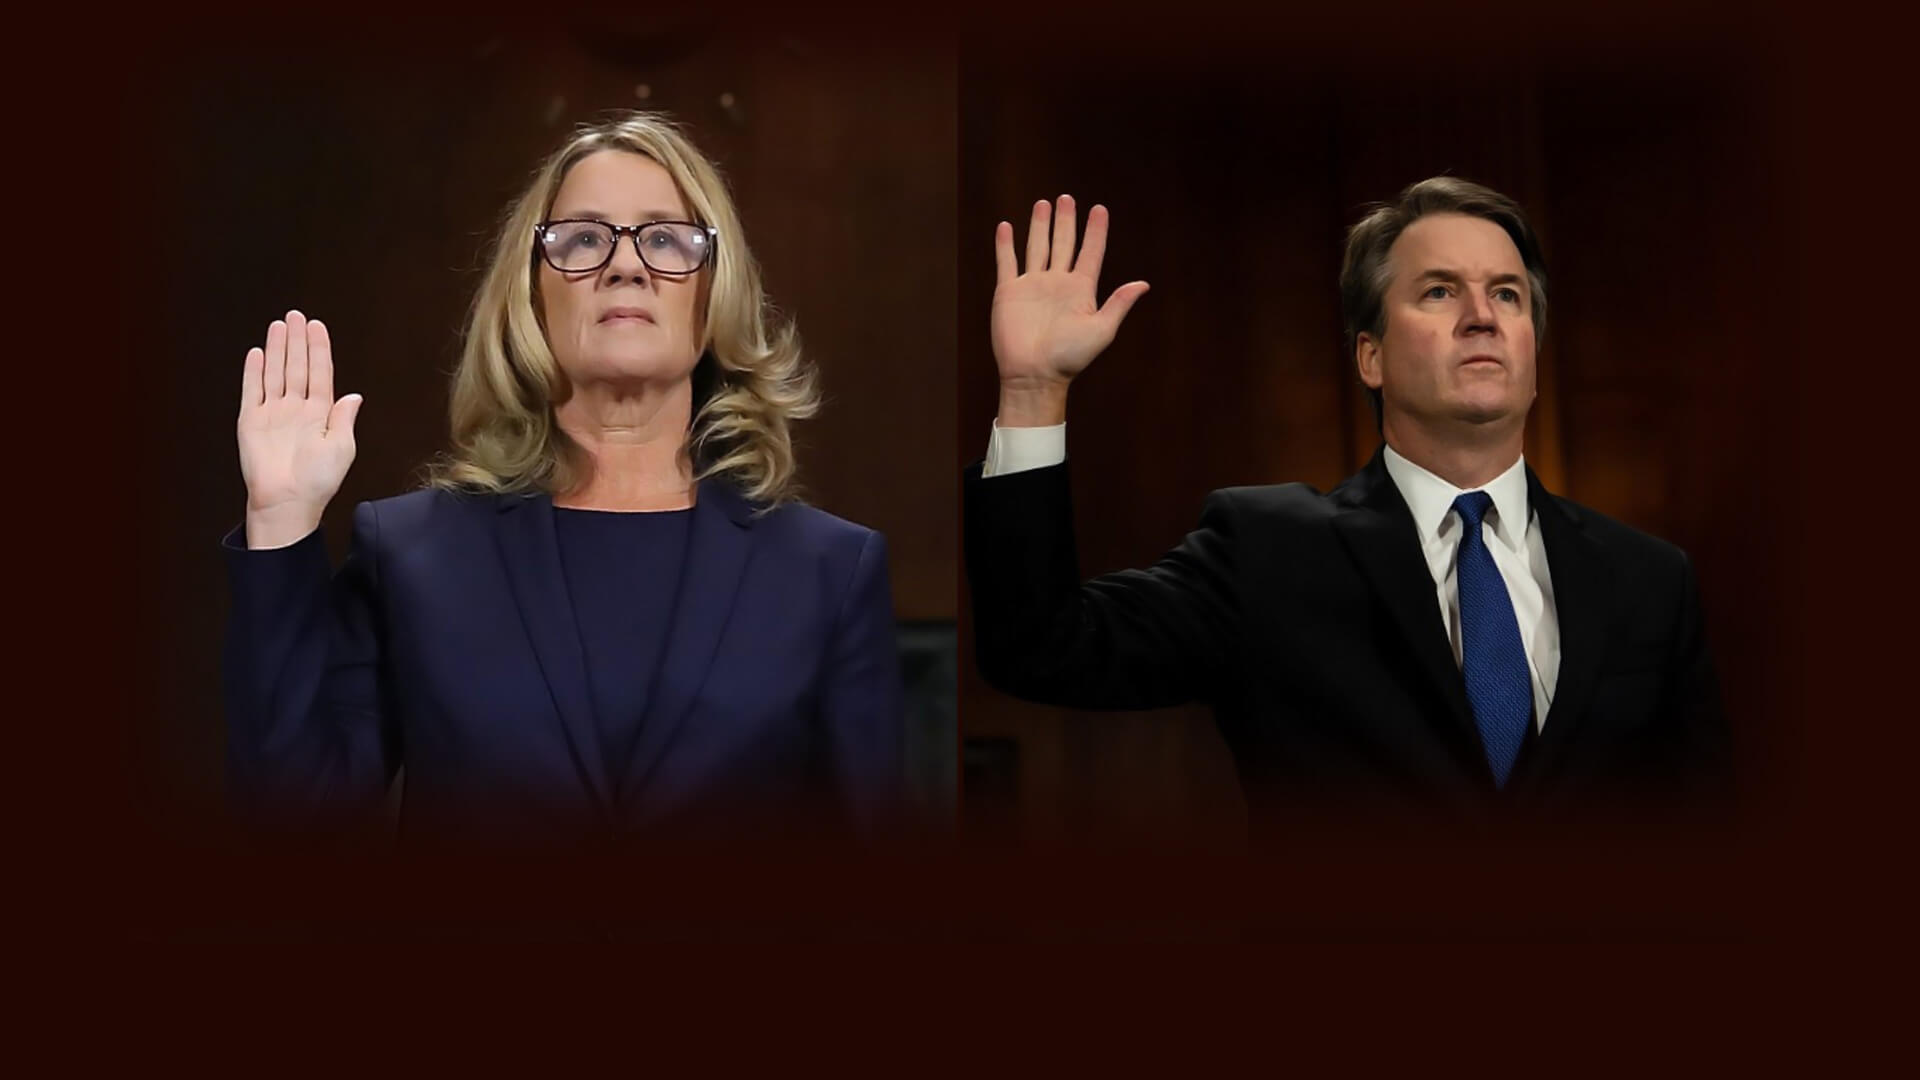 The Supreme Court, Truth, Conservatism, and Humility